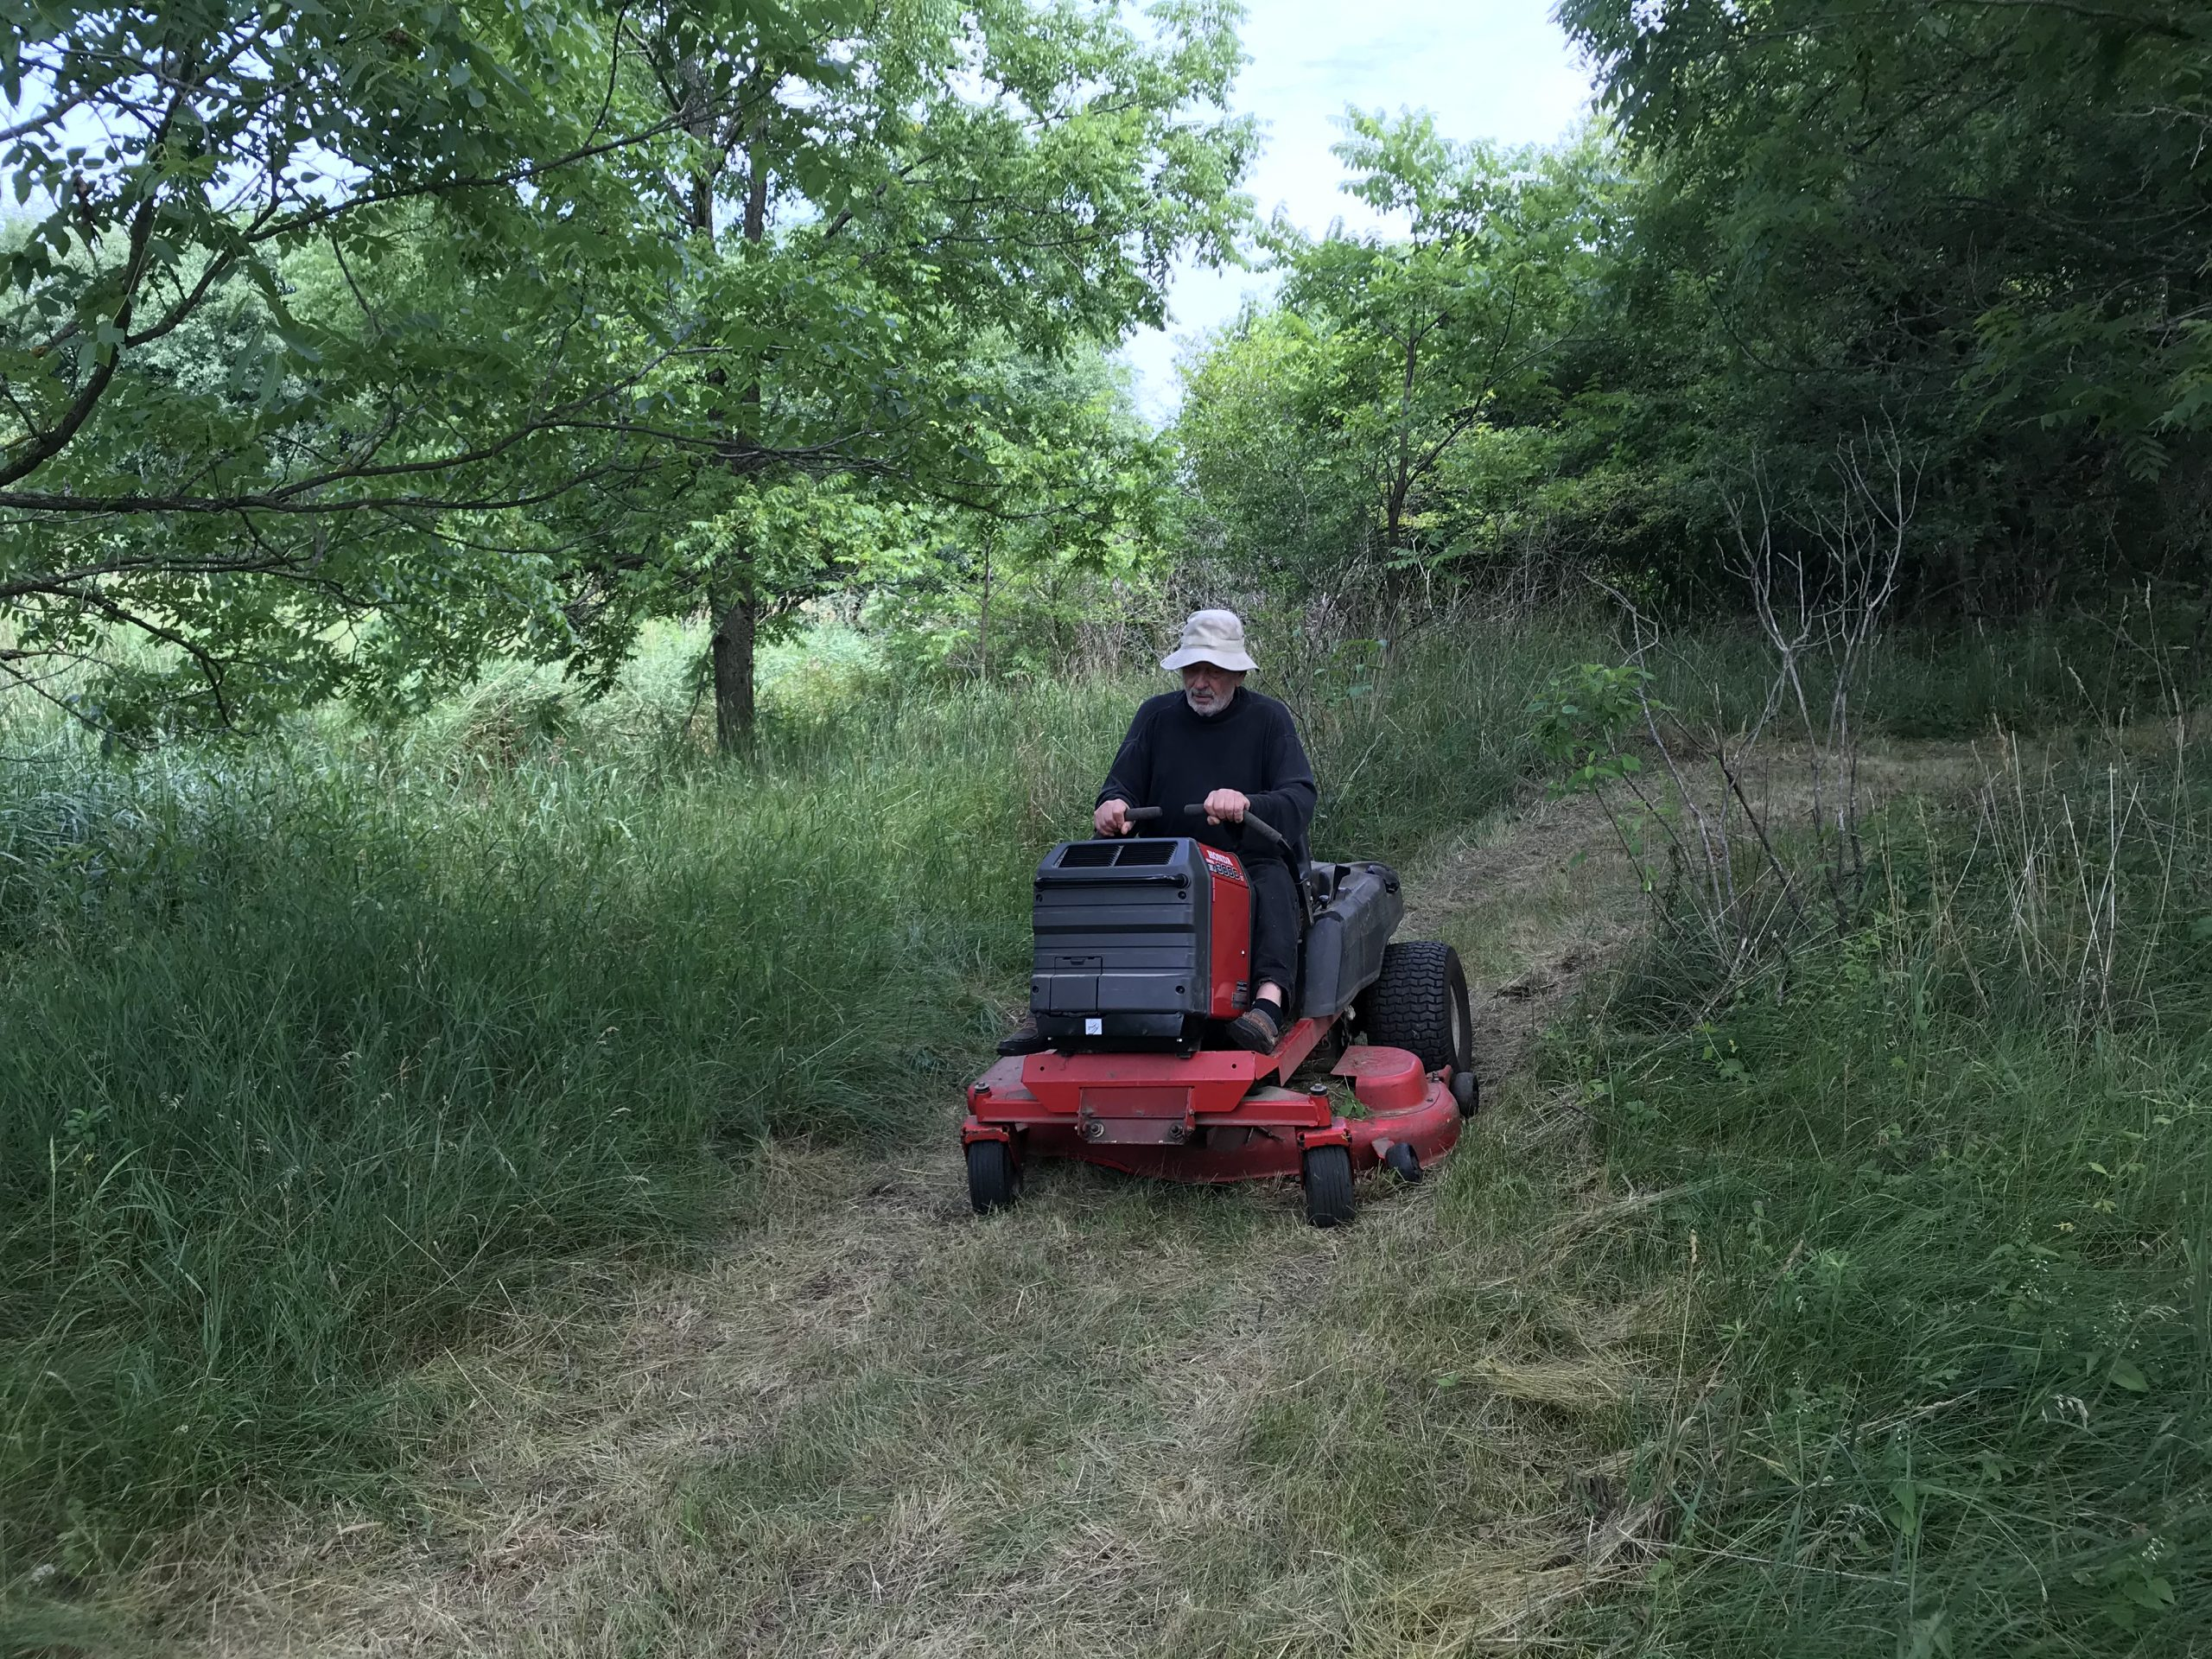 Tues July 21 - Landowner Peter towing out the generator for us